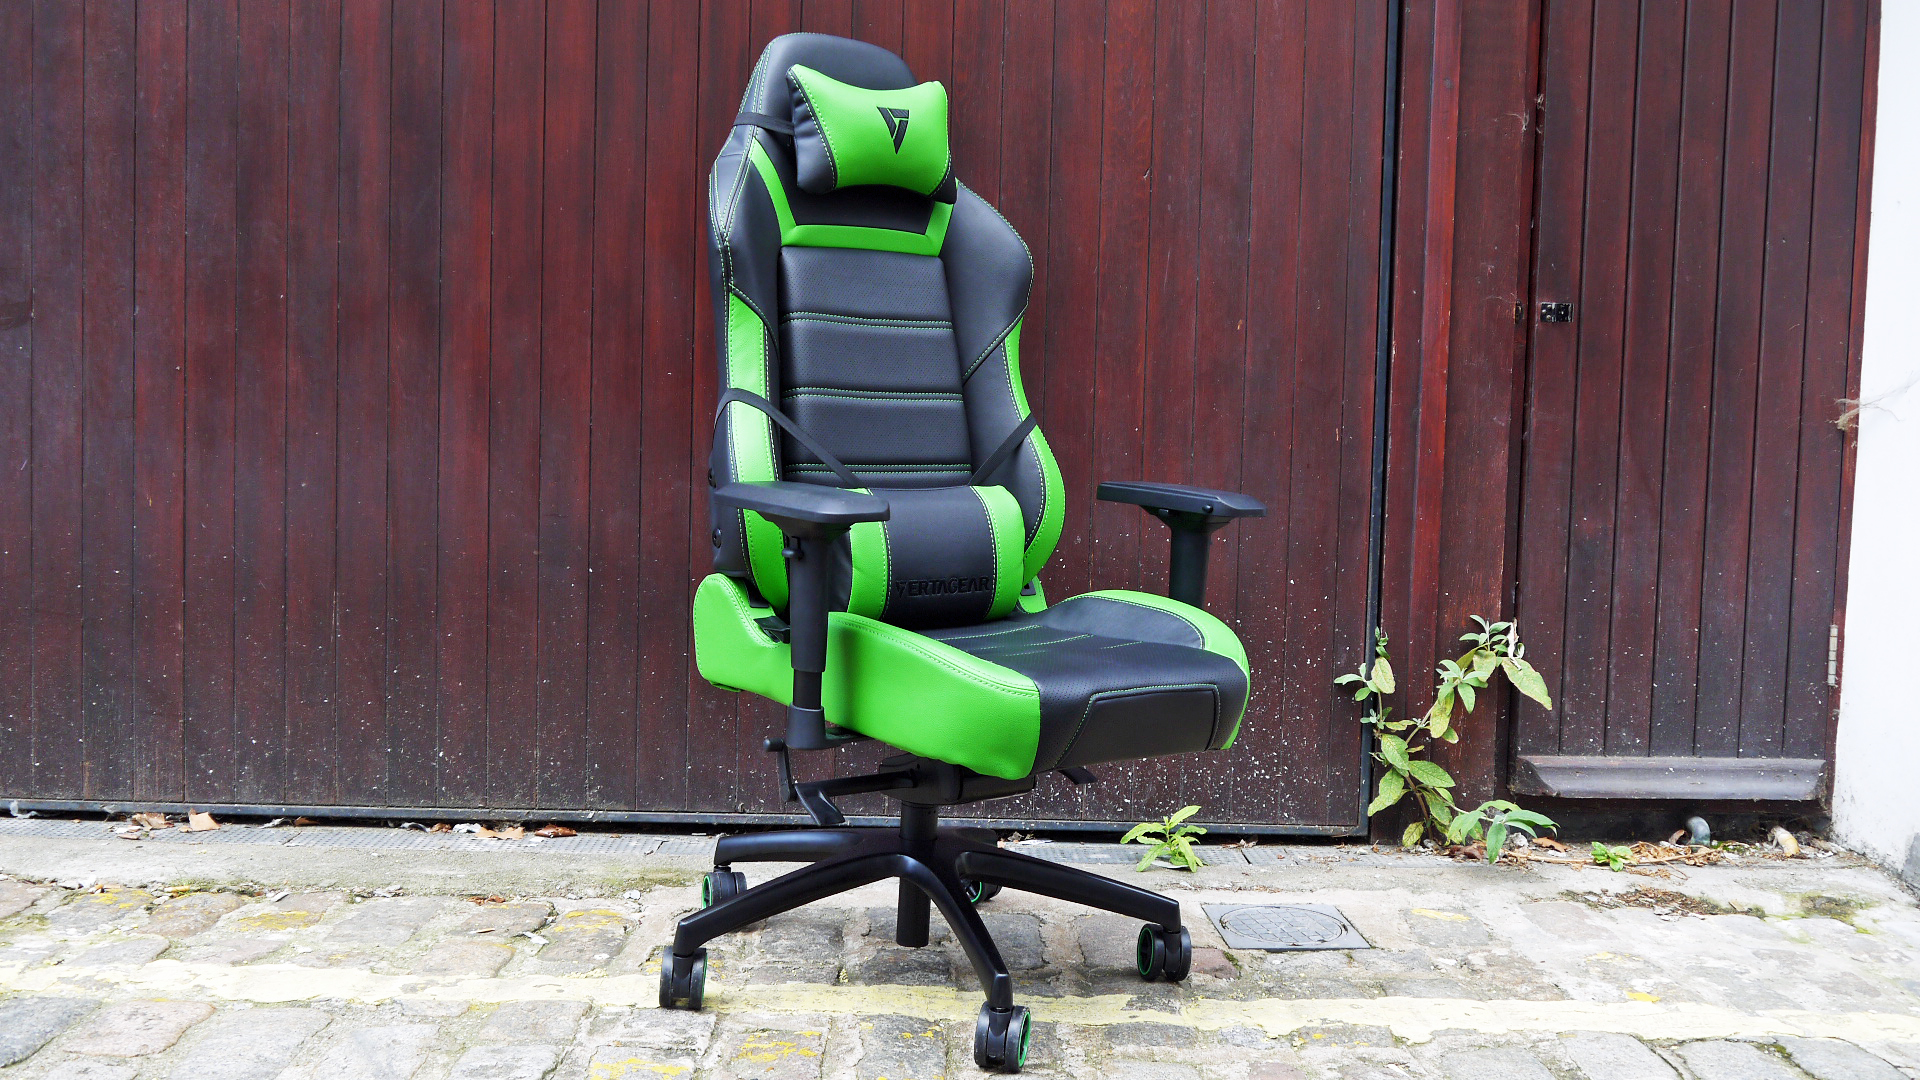 Stupendous Best Pc Gaming Chair 2017 The Best Chairs To Game In Lamtechconsult Wood Chair Design Ideas Lamtechconsultcom